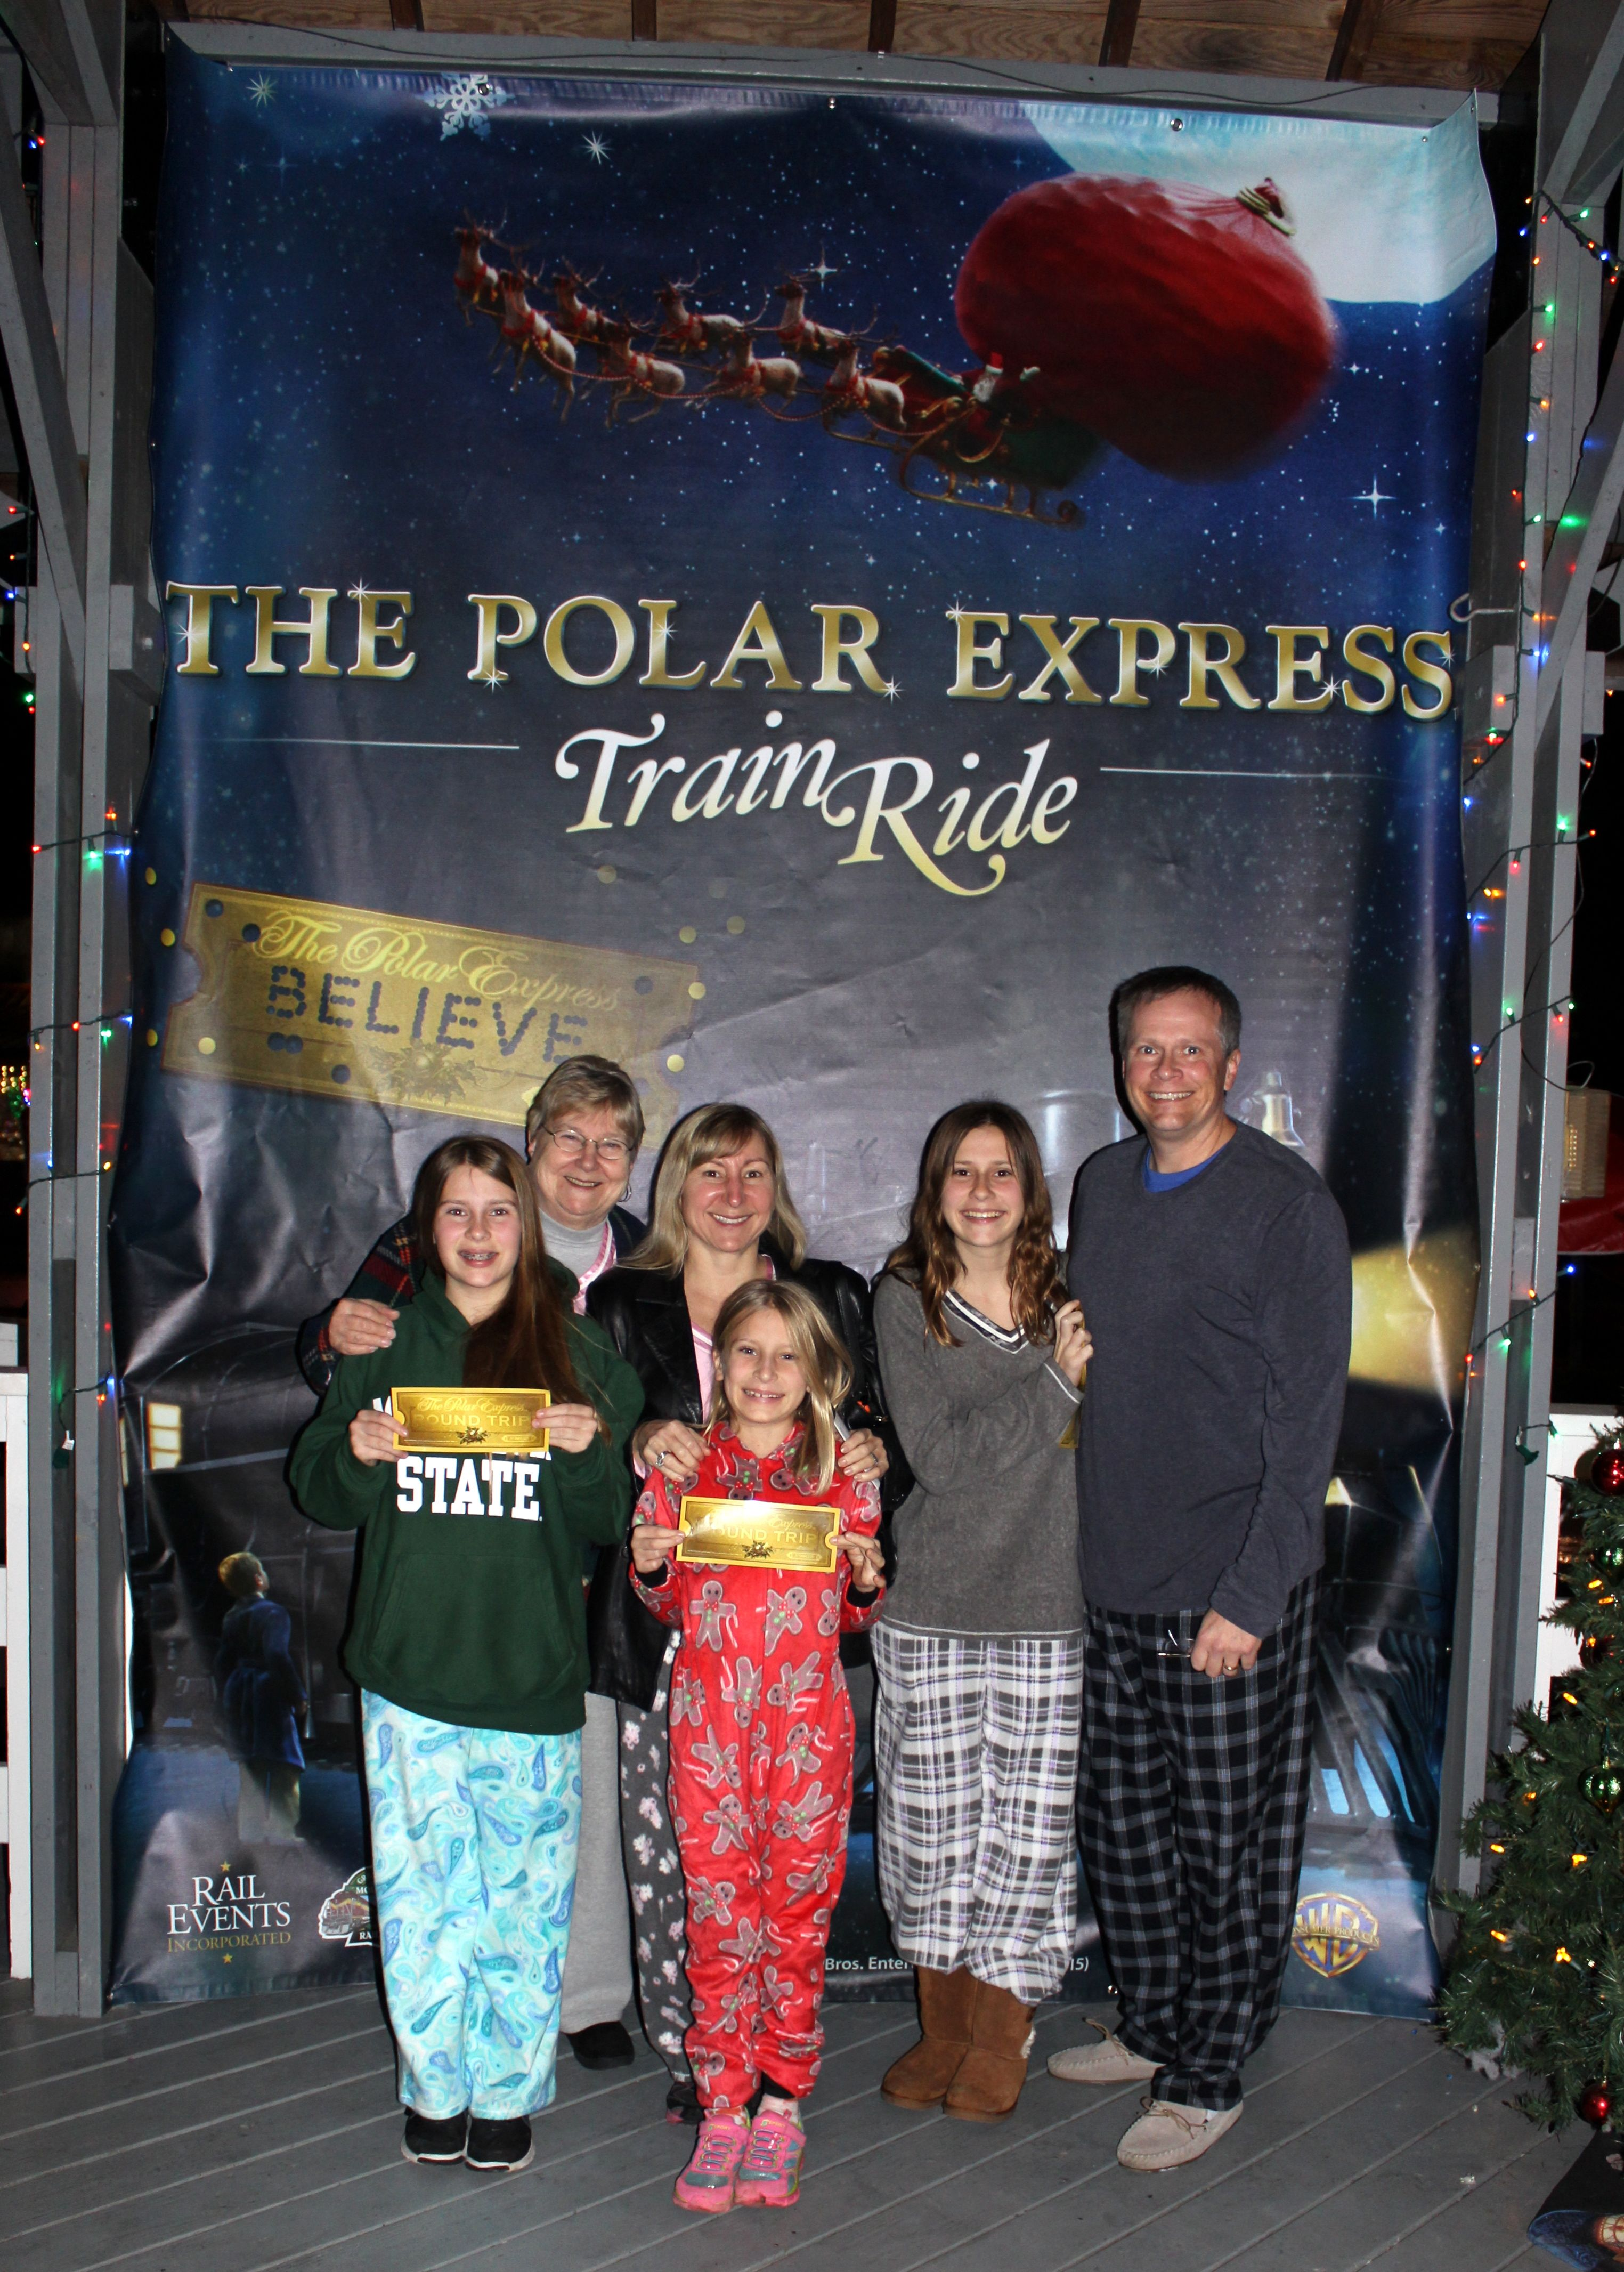 Bryson City Nc The Polar Express A Must Do At Least Once In Your Life Polar Express Train Ride Polar Express Polar Express Train